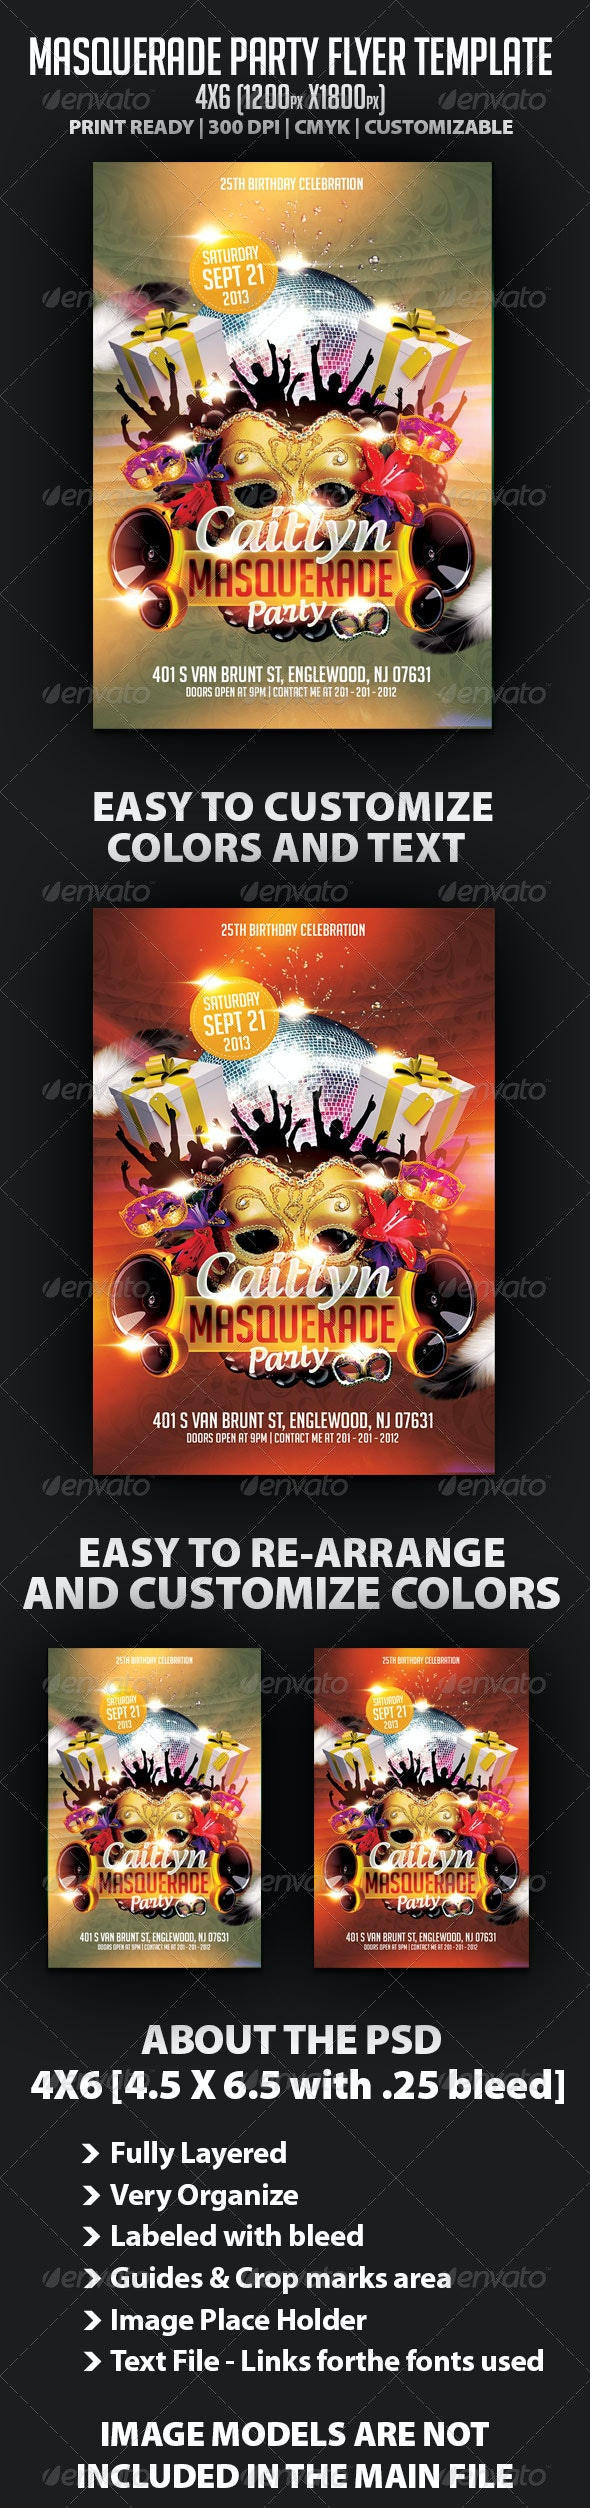 Masquerade Birthday Party Flyer Template - Clubs & Parties Events